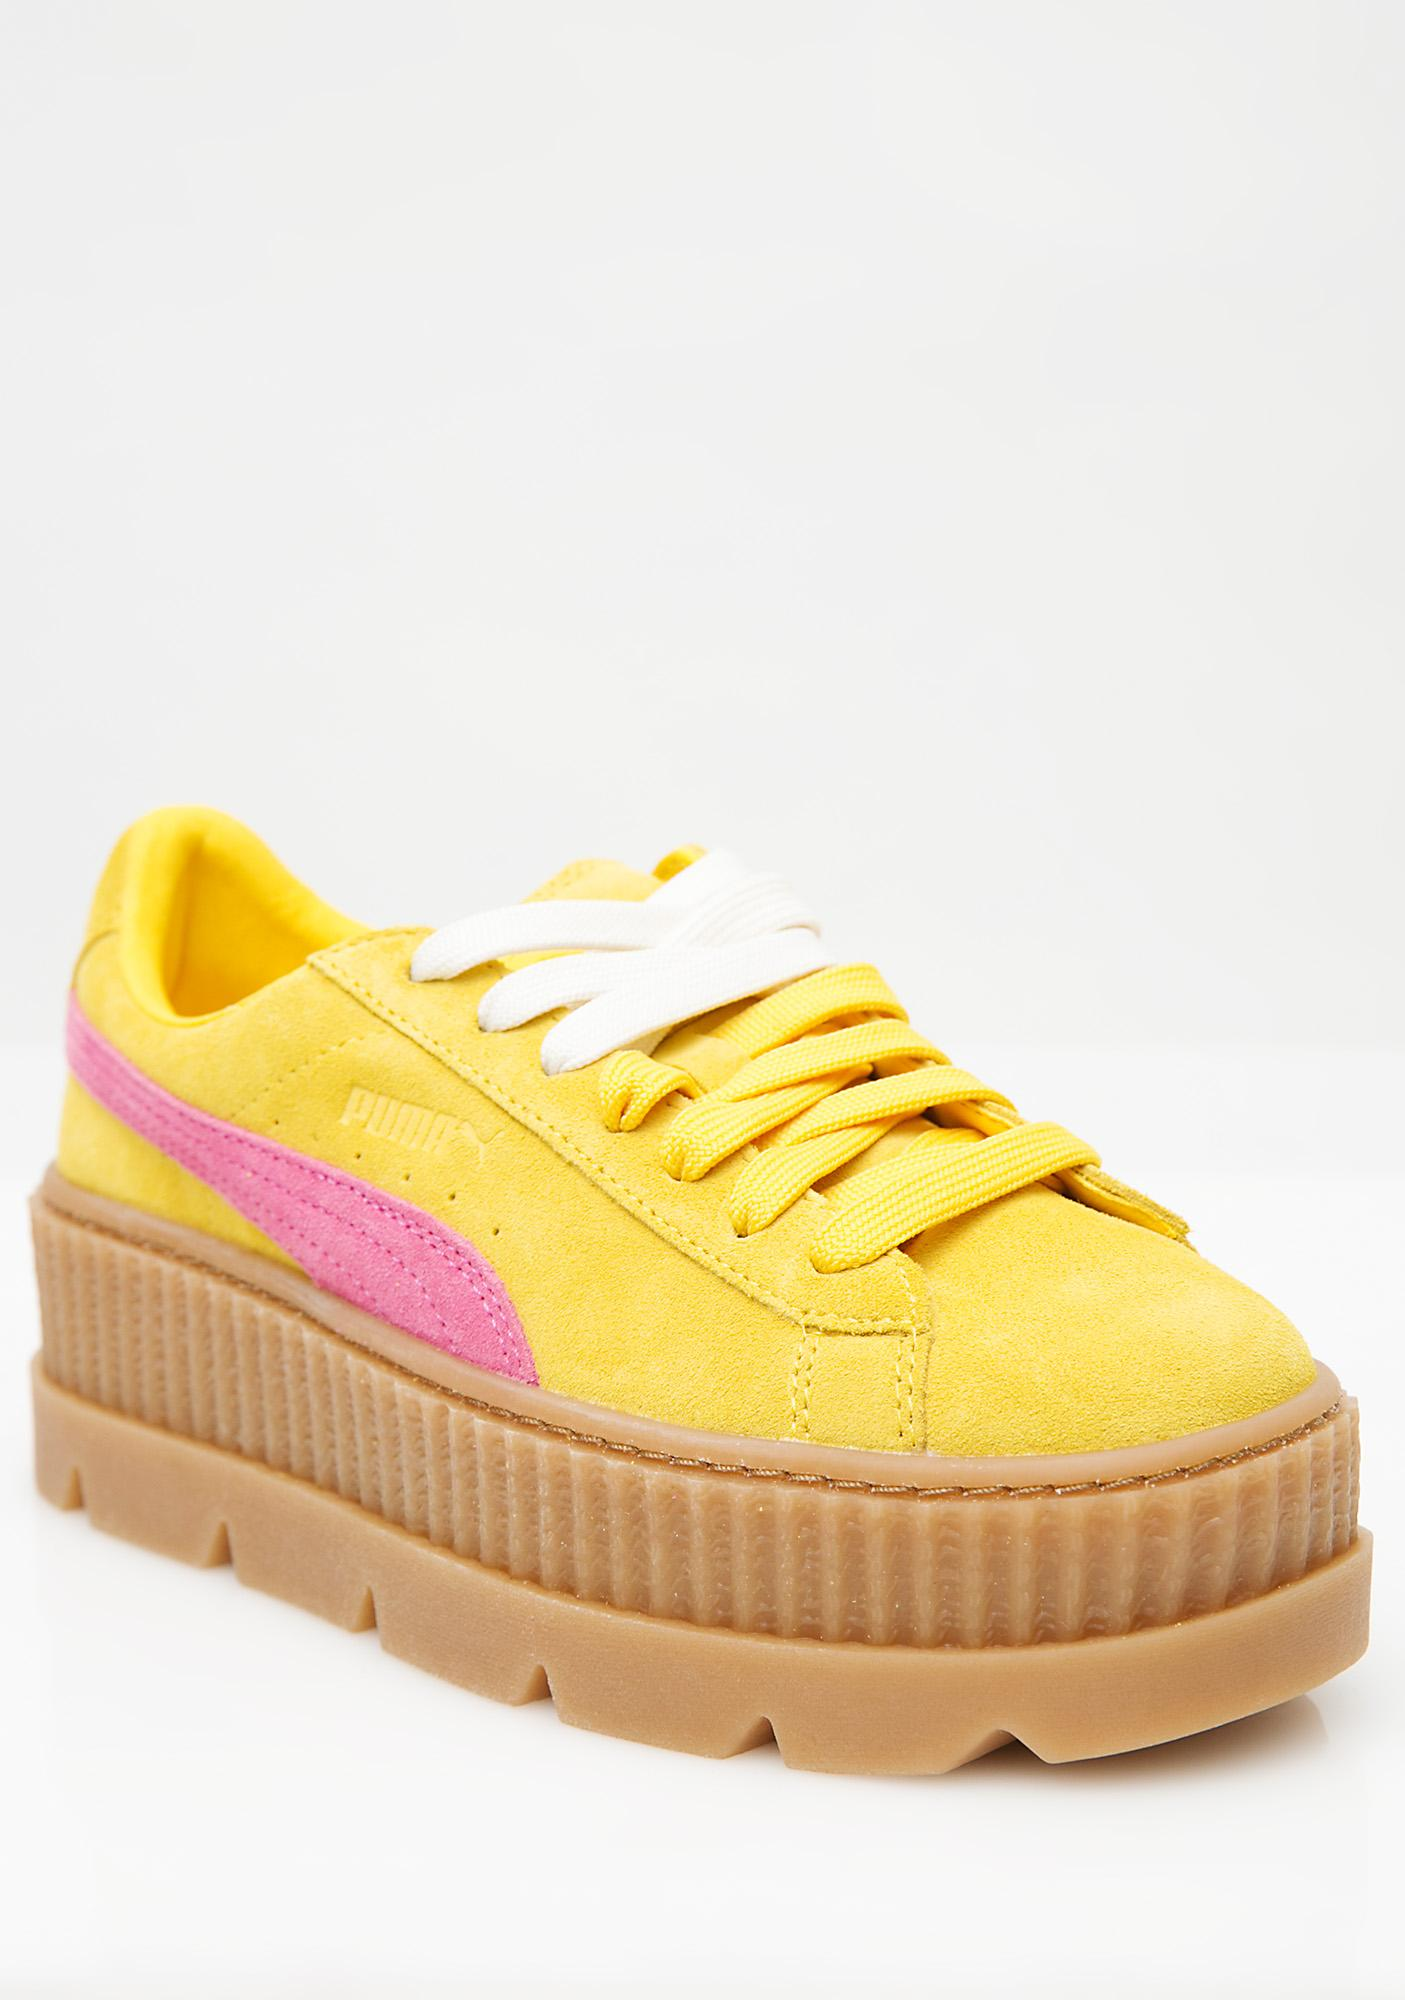 puma cleated creeper clear bottom